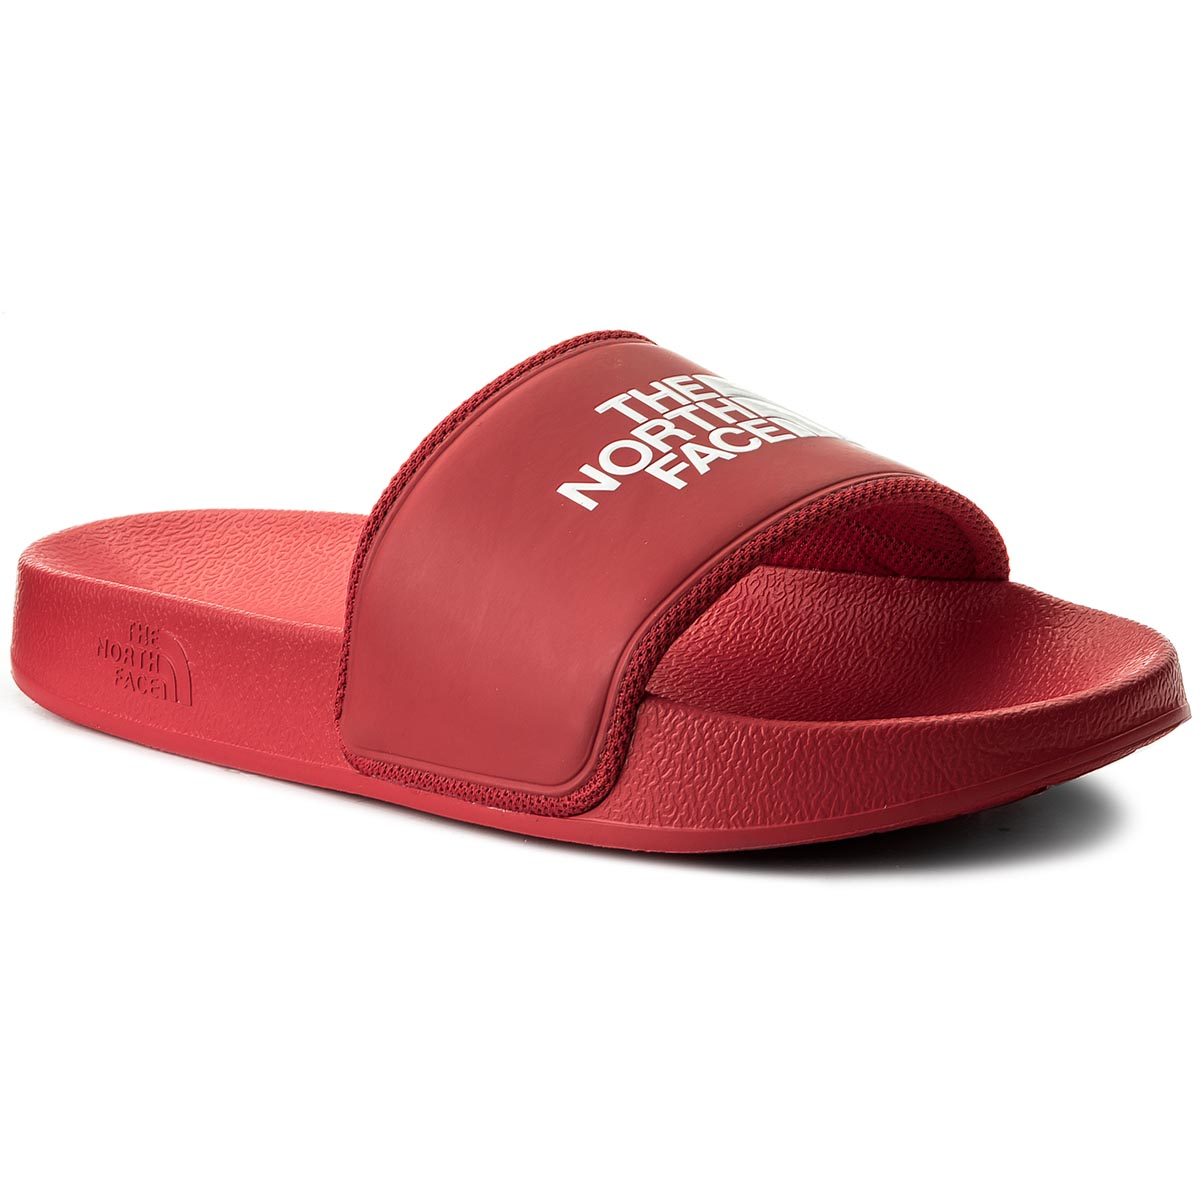 Șlapi THE NORTH FACE - Base Camp Slide II T93K4BKZ4 Tnf Red/Tnf White